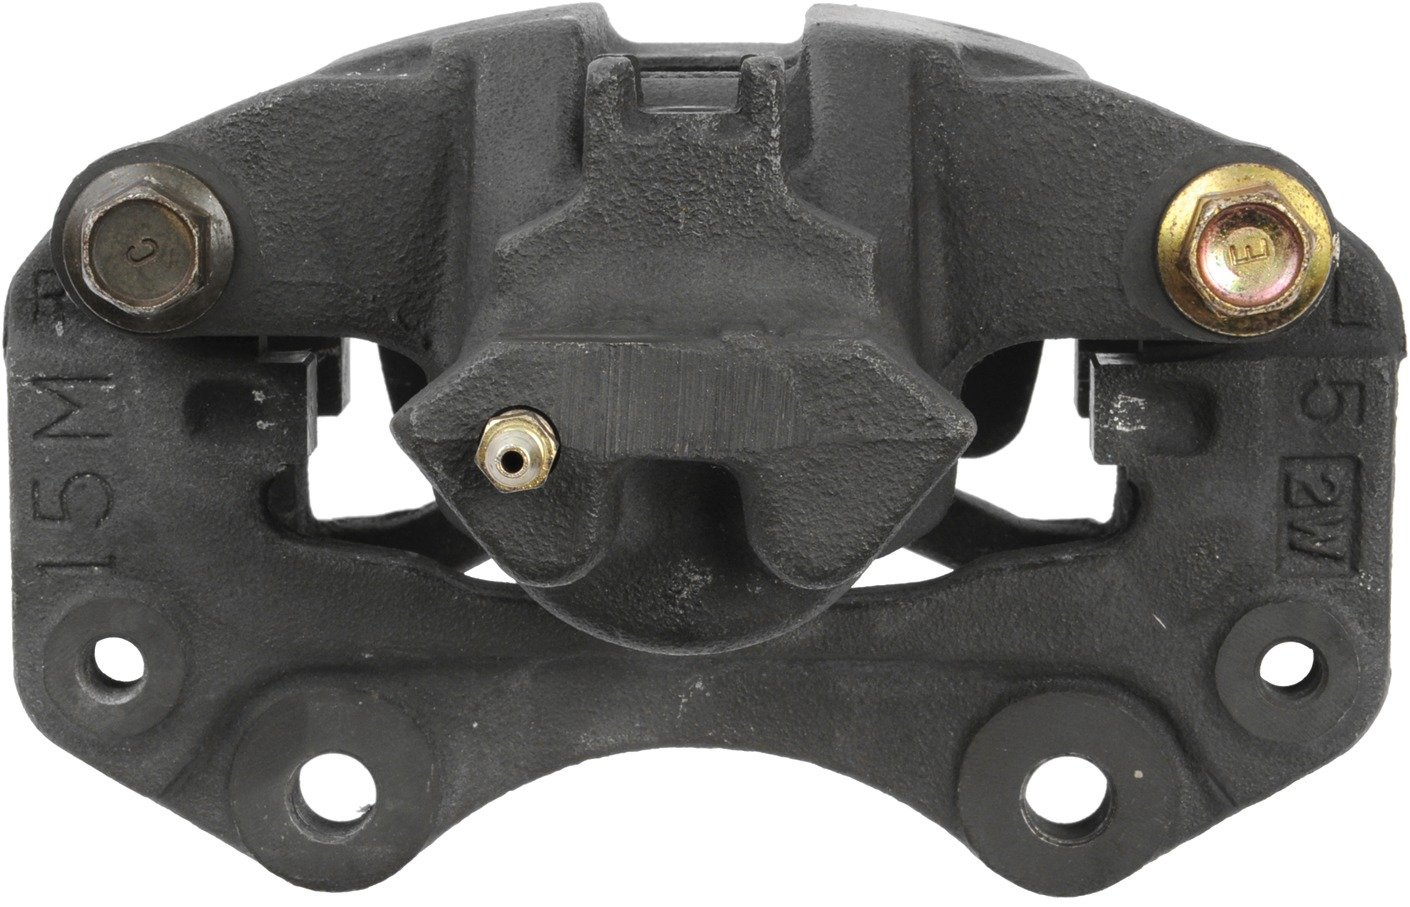 A1 Cardone 18-B8032 Unloaded Brake Caliper with Bracket (Remanufactured)